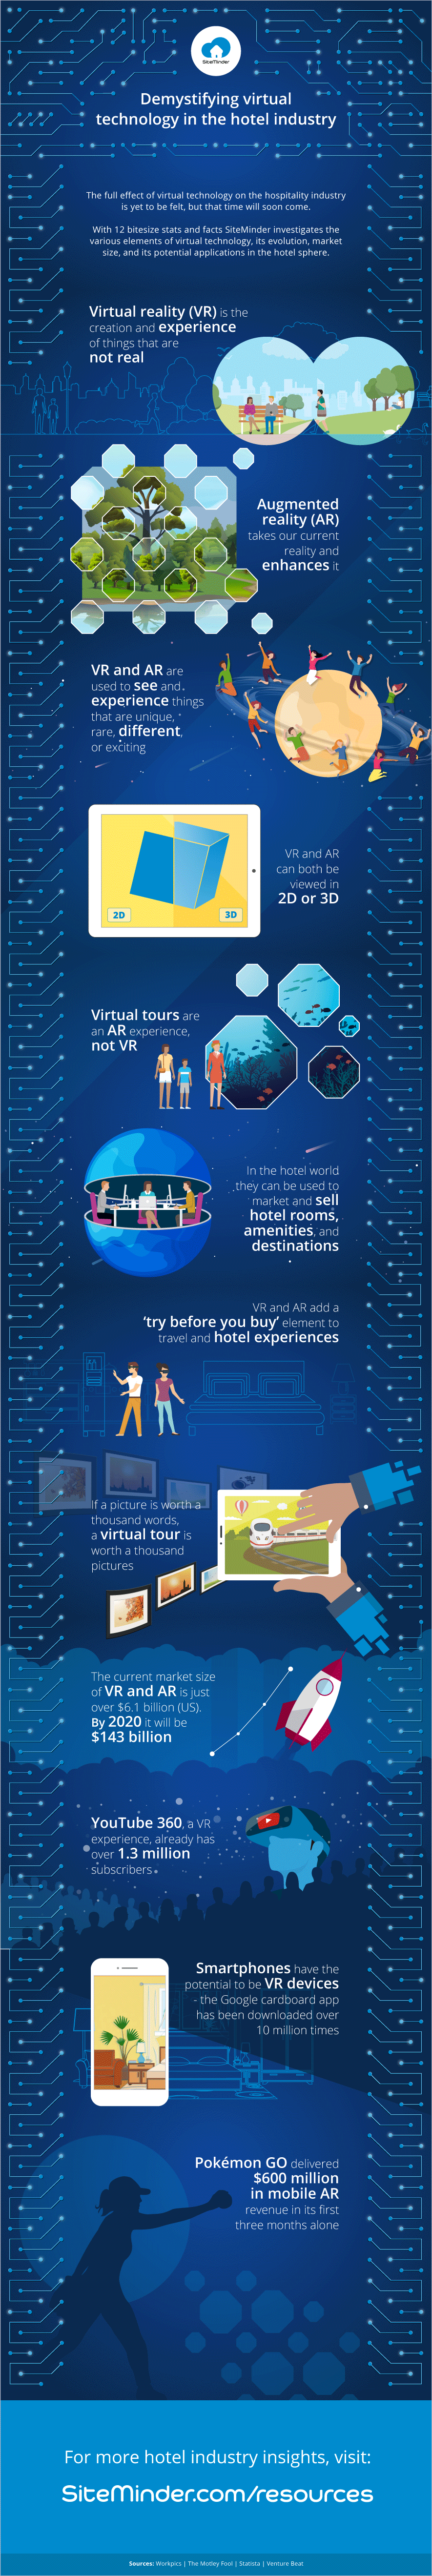 Infographic demystifying virtual technology in the hotel industry